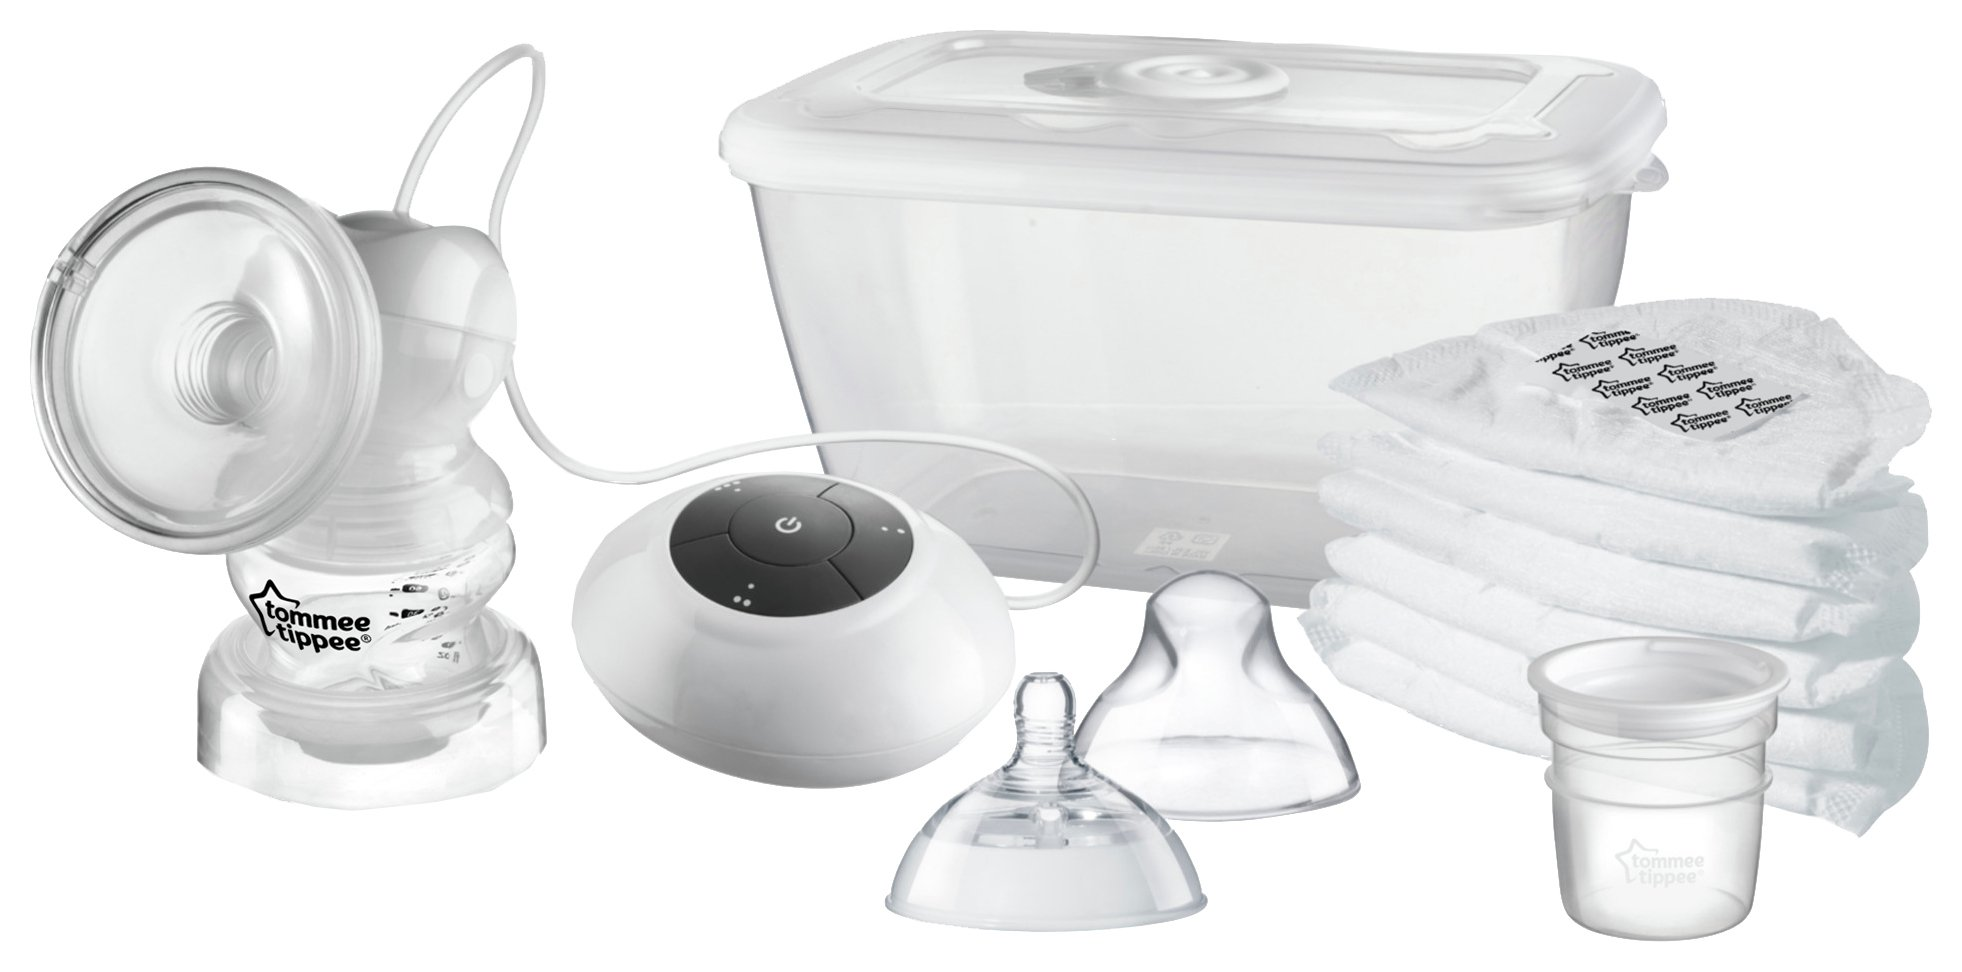 Tommee Tippee - Closer to Nature - Electric Breast Pump